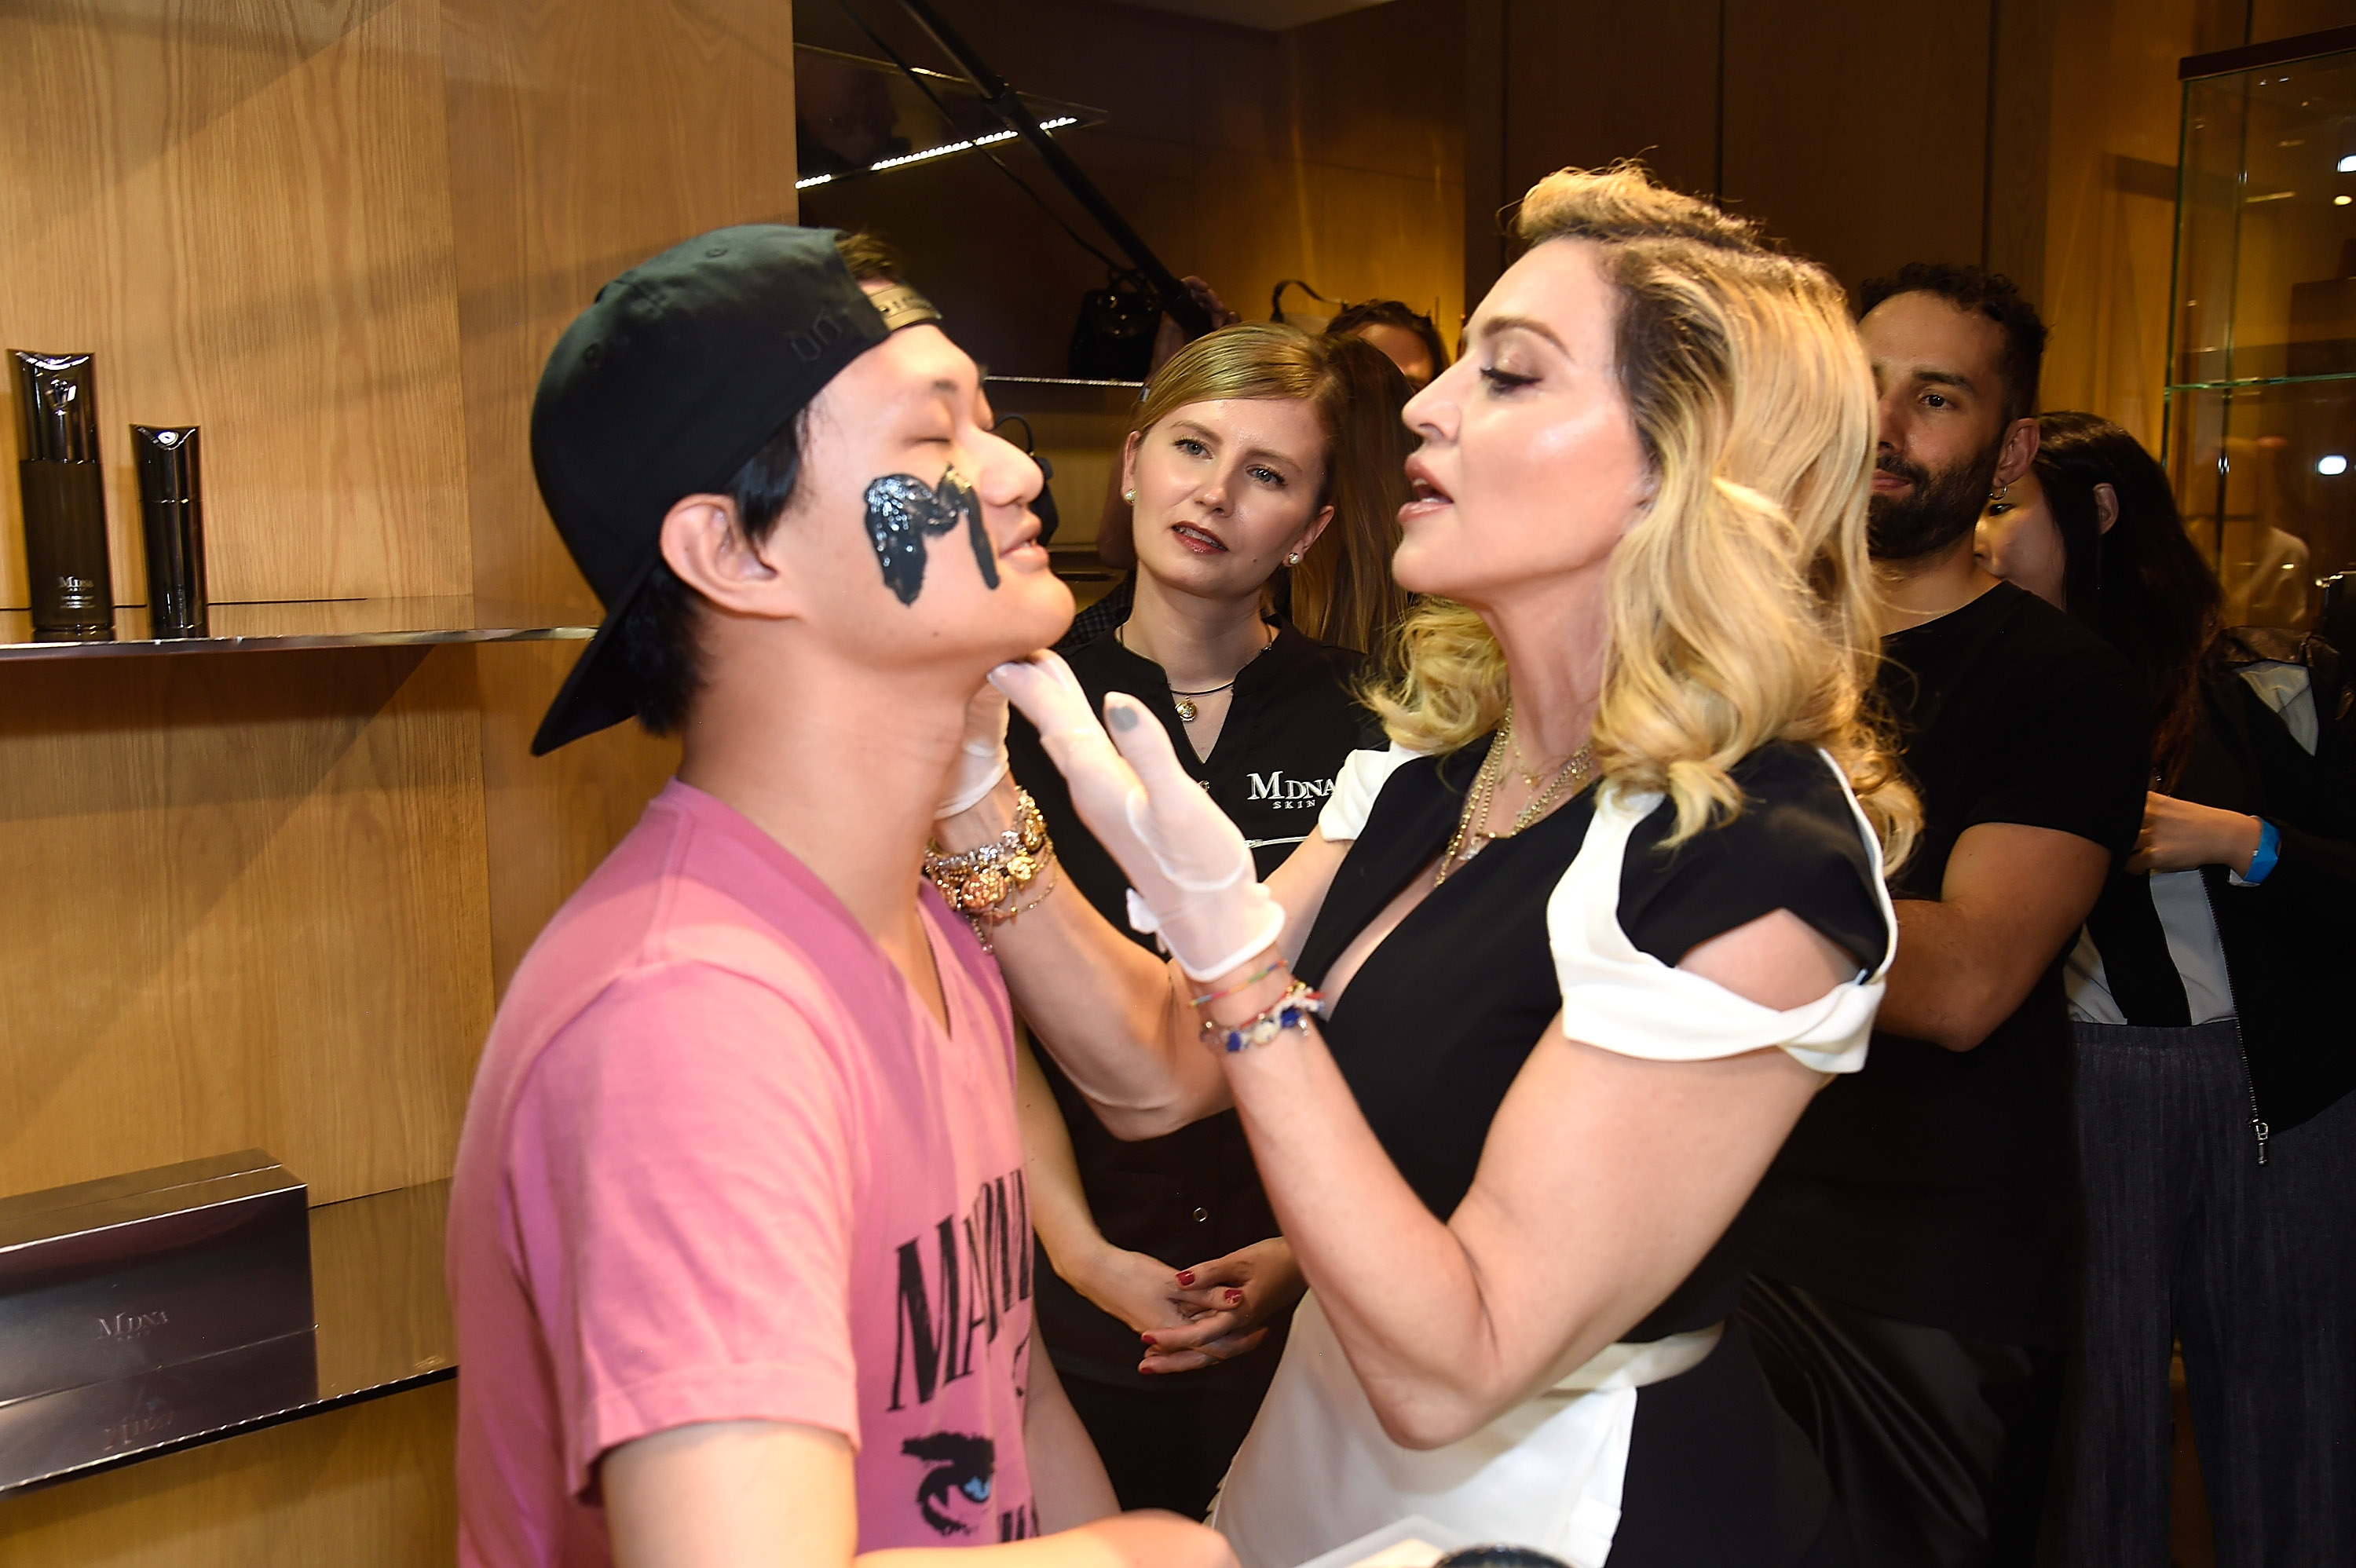 NEW YORK, NY - SEPTEMBER 26:  Madonna launches MDNA SKIN collection at Barneys New York on September 26, 2017 in New York City.  (Photo by Kevin Mazur/Getty Images for MDNA SKIN)